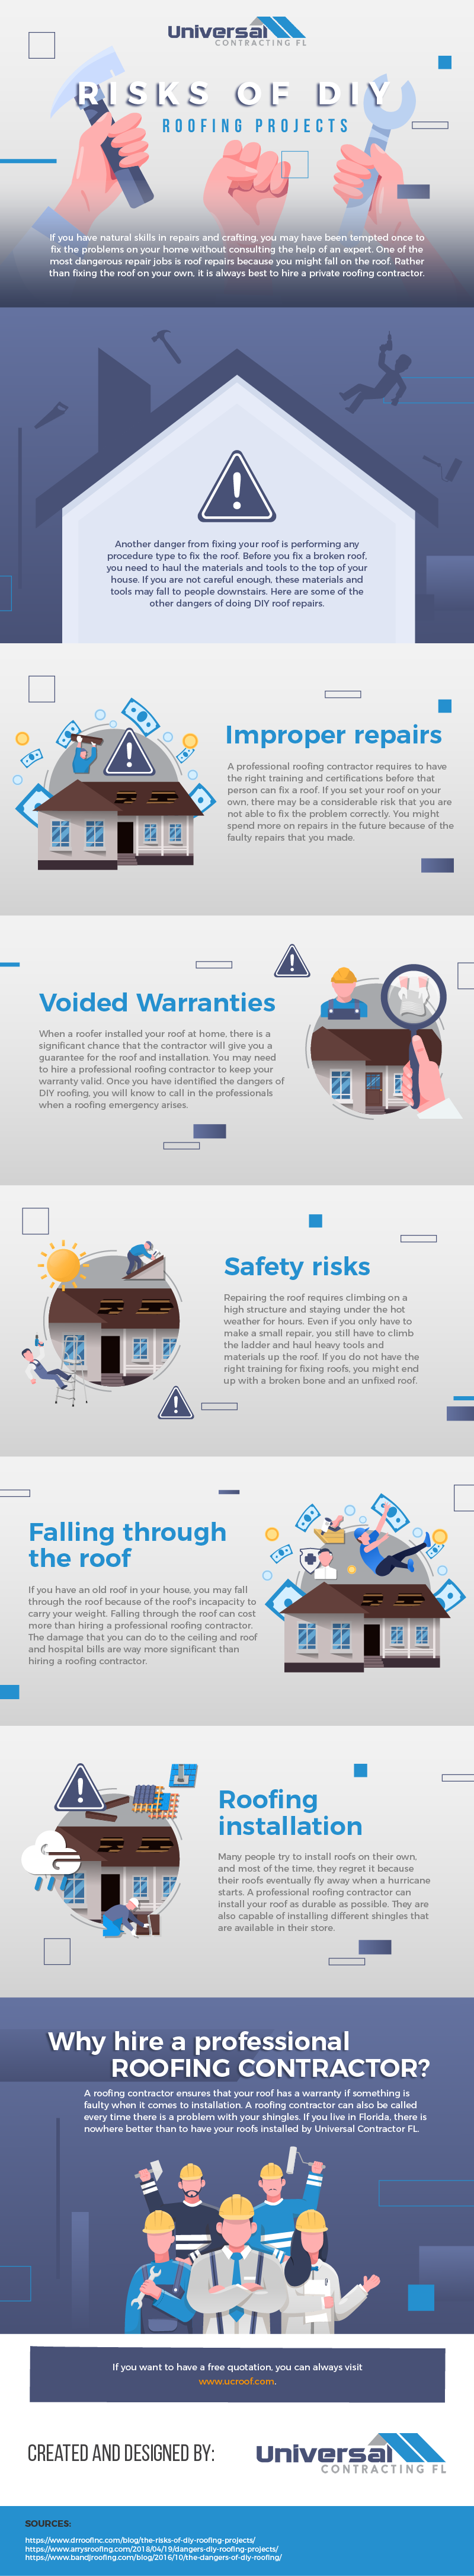 Risks of DIY roofing projects - Infographic